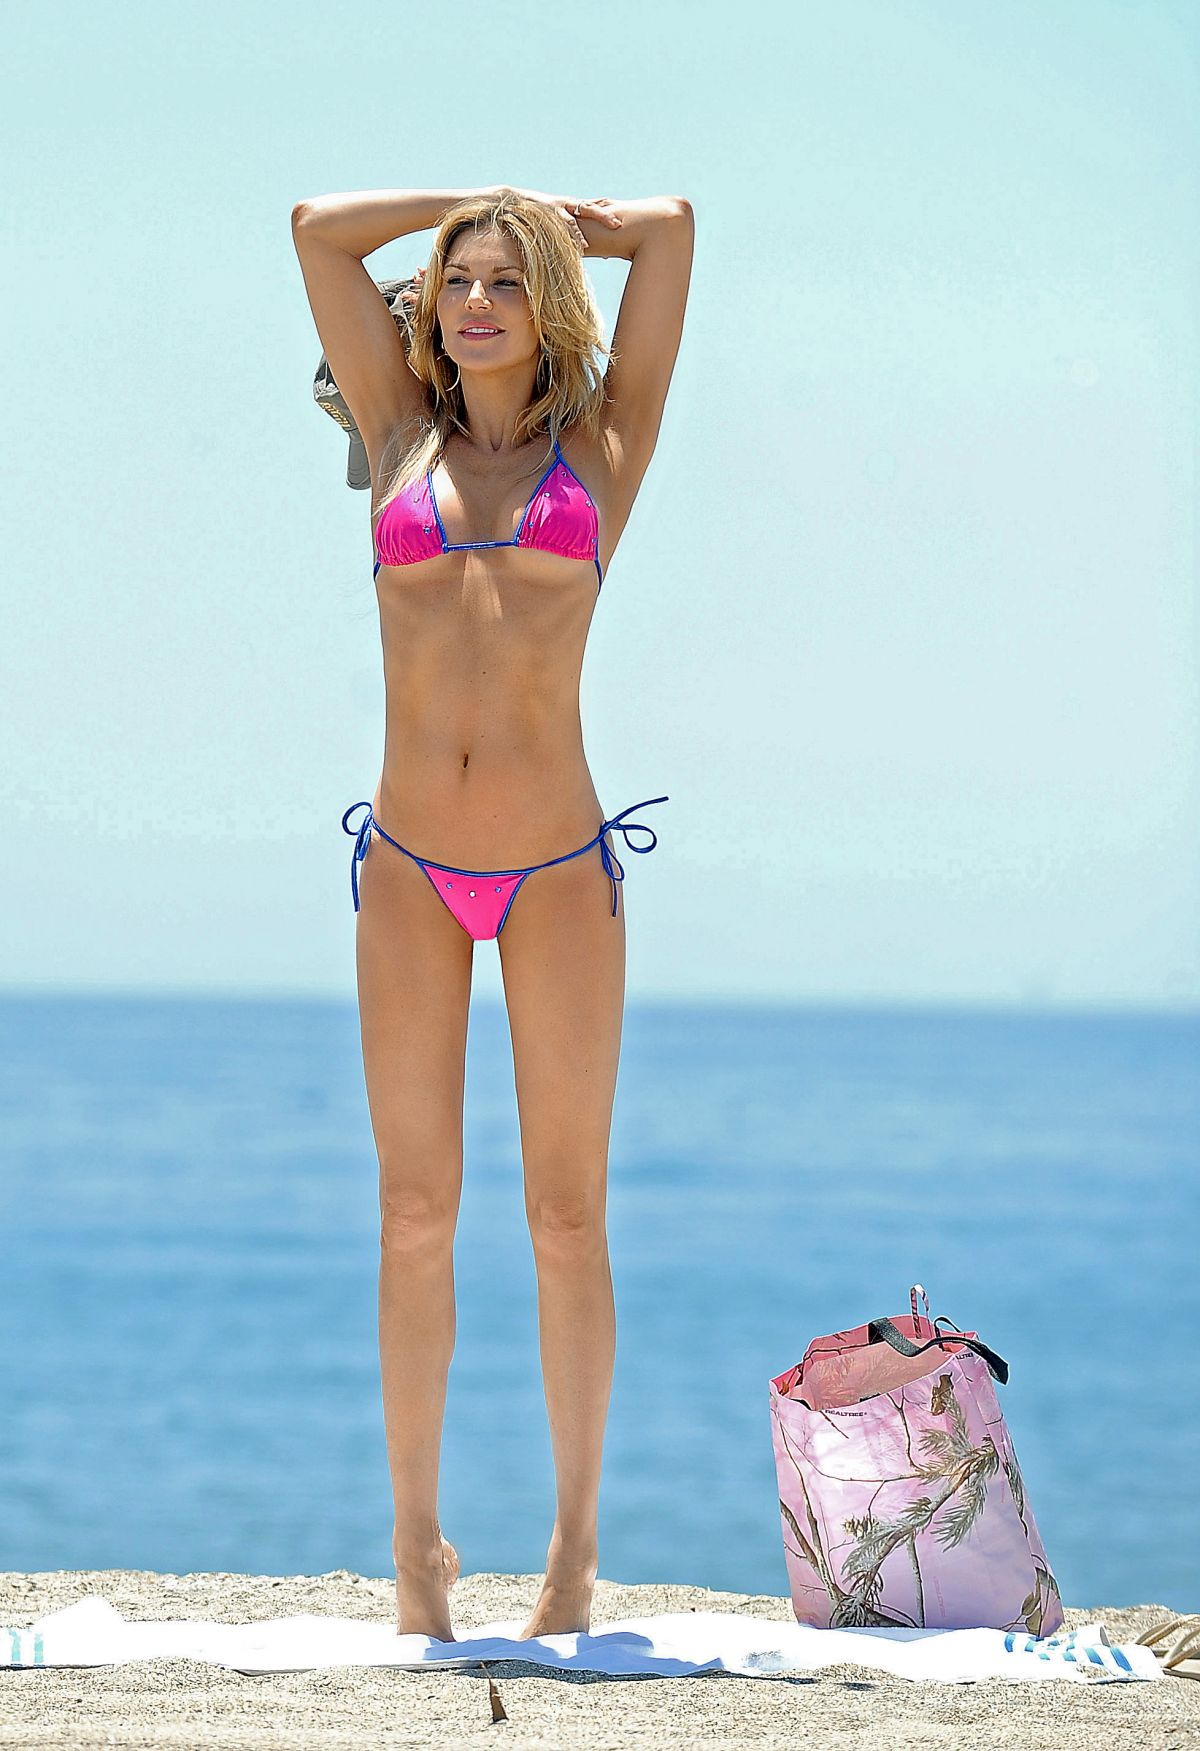 brandi-glanville-in-bikini-at-a-beach-in-los-angeles_10.jpg - 218.84 KB